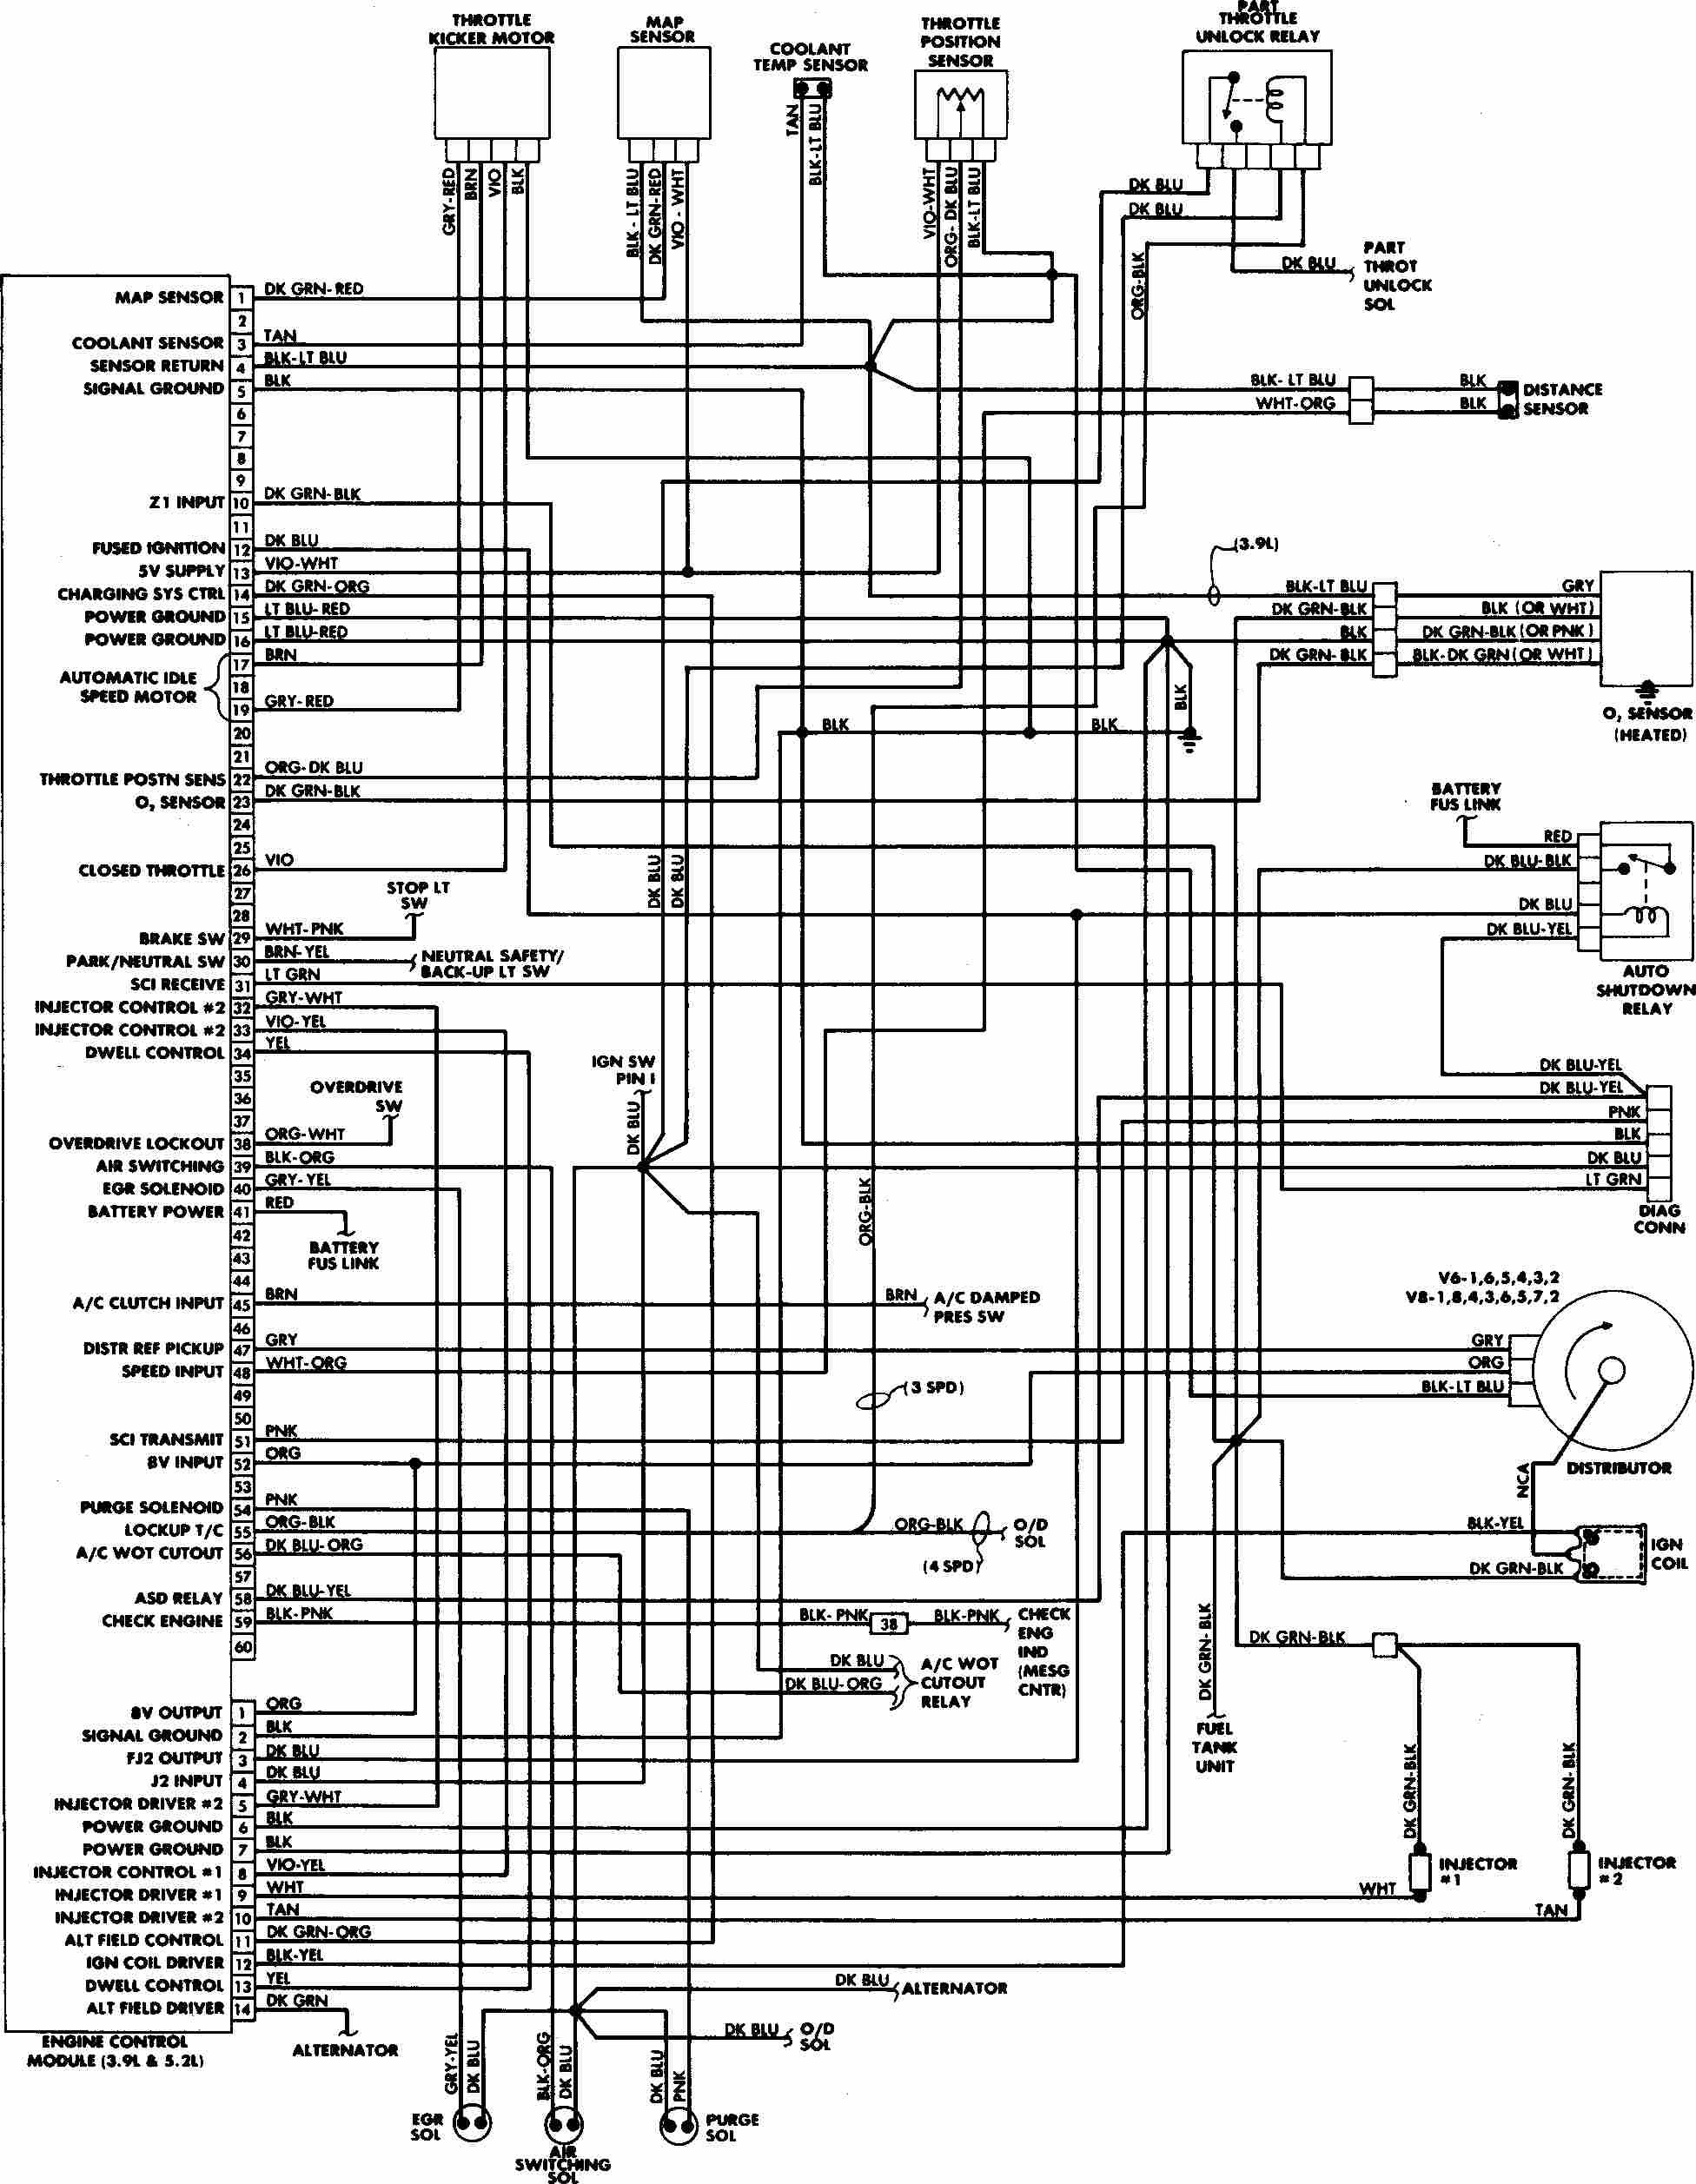 M715 Wiring Harness | Wiring Diagram on